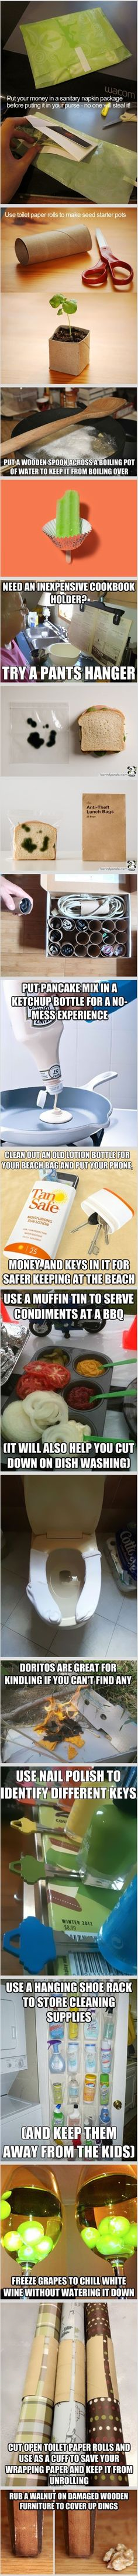 Funny but cool life hacks